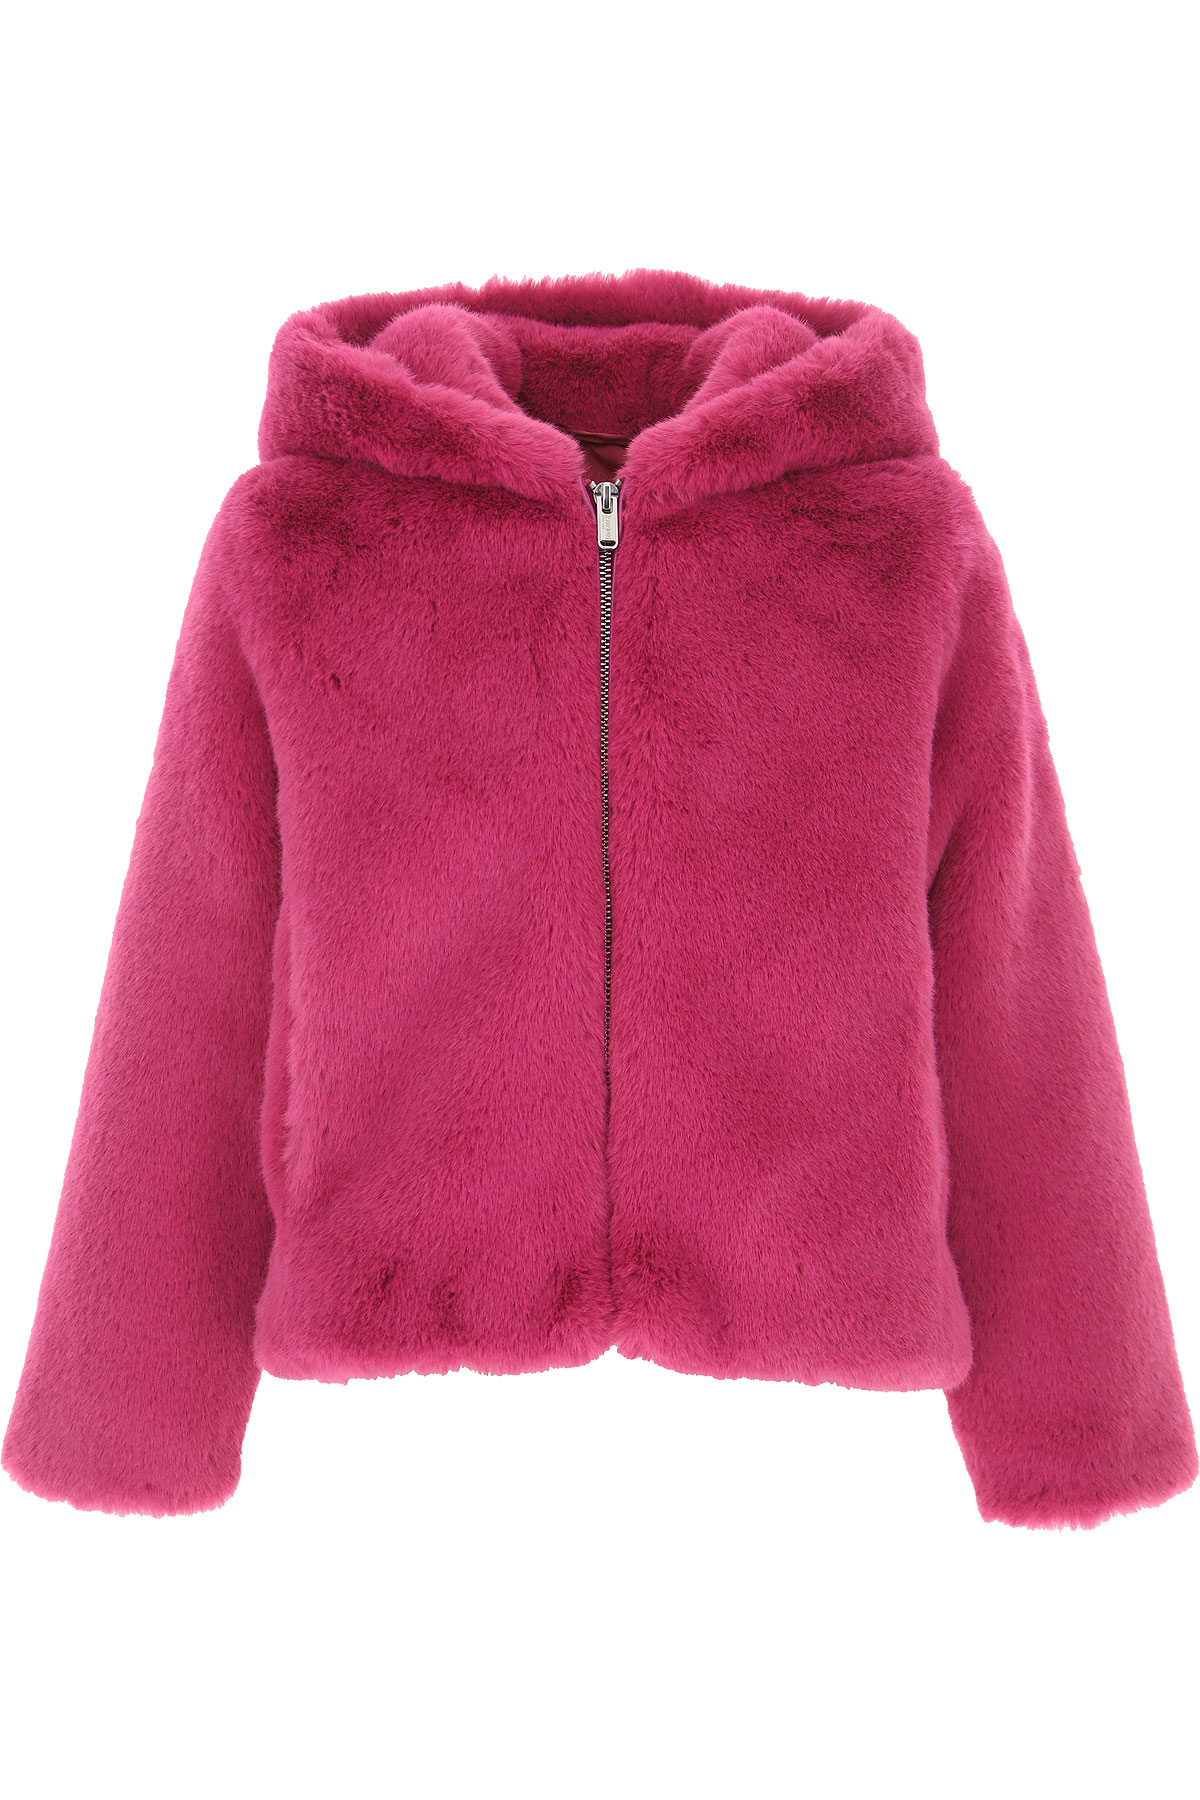 Bomboogie Kids Jacket for Girls On Sale, Fuchsia, polyester, 2019, 12Y 2Y 4Y